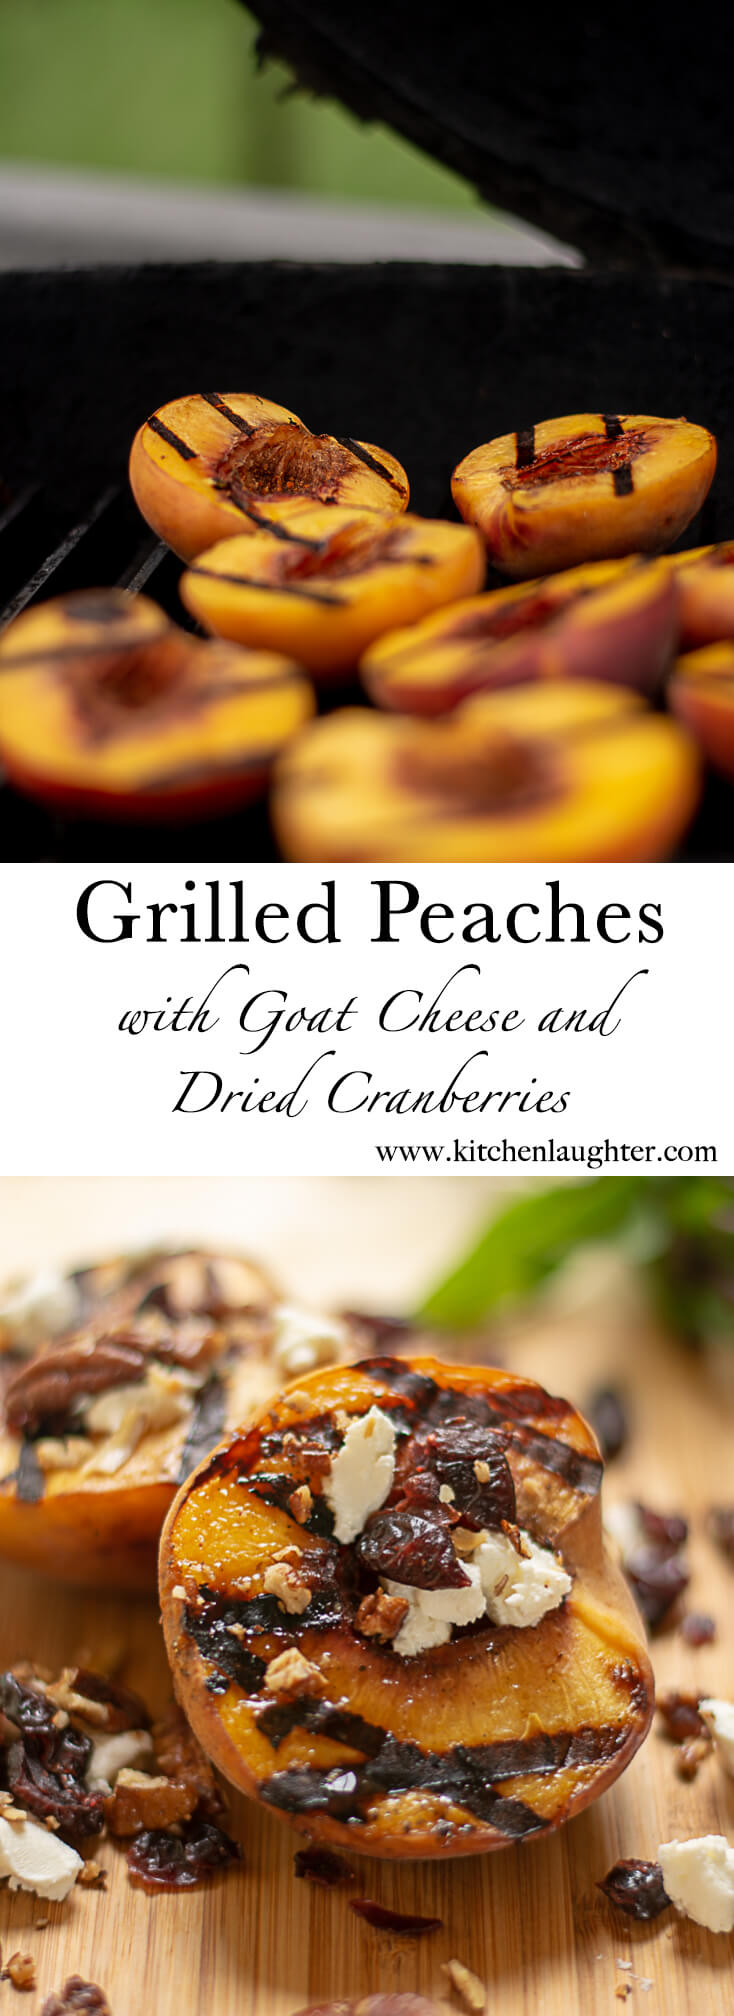 Grilled Peaches are the perfect dessert after dinner #BGE #BigGreenEgg #Dessert #grilling #peaches #bbq #barbecue #grillporn #bgenation